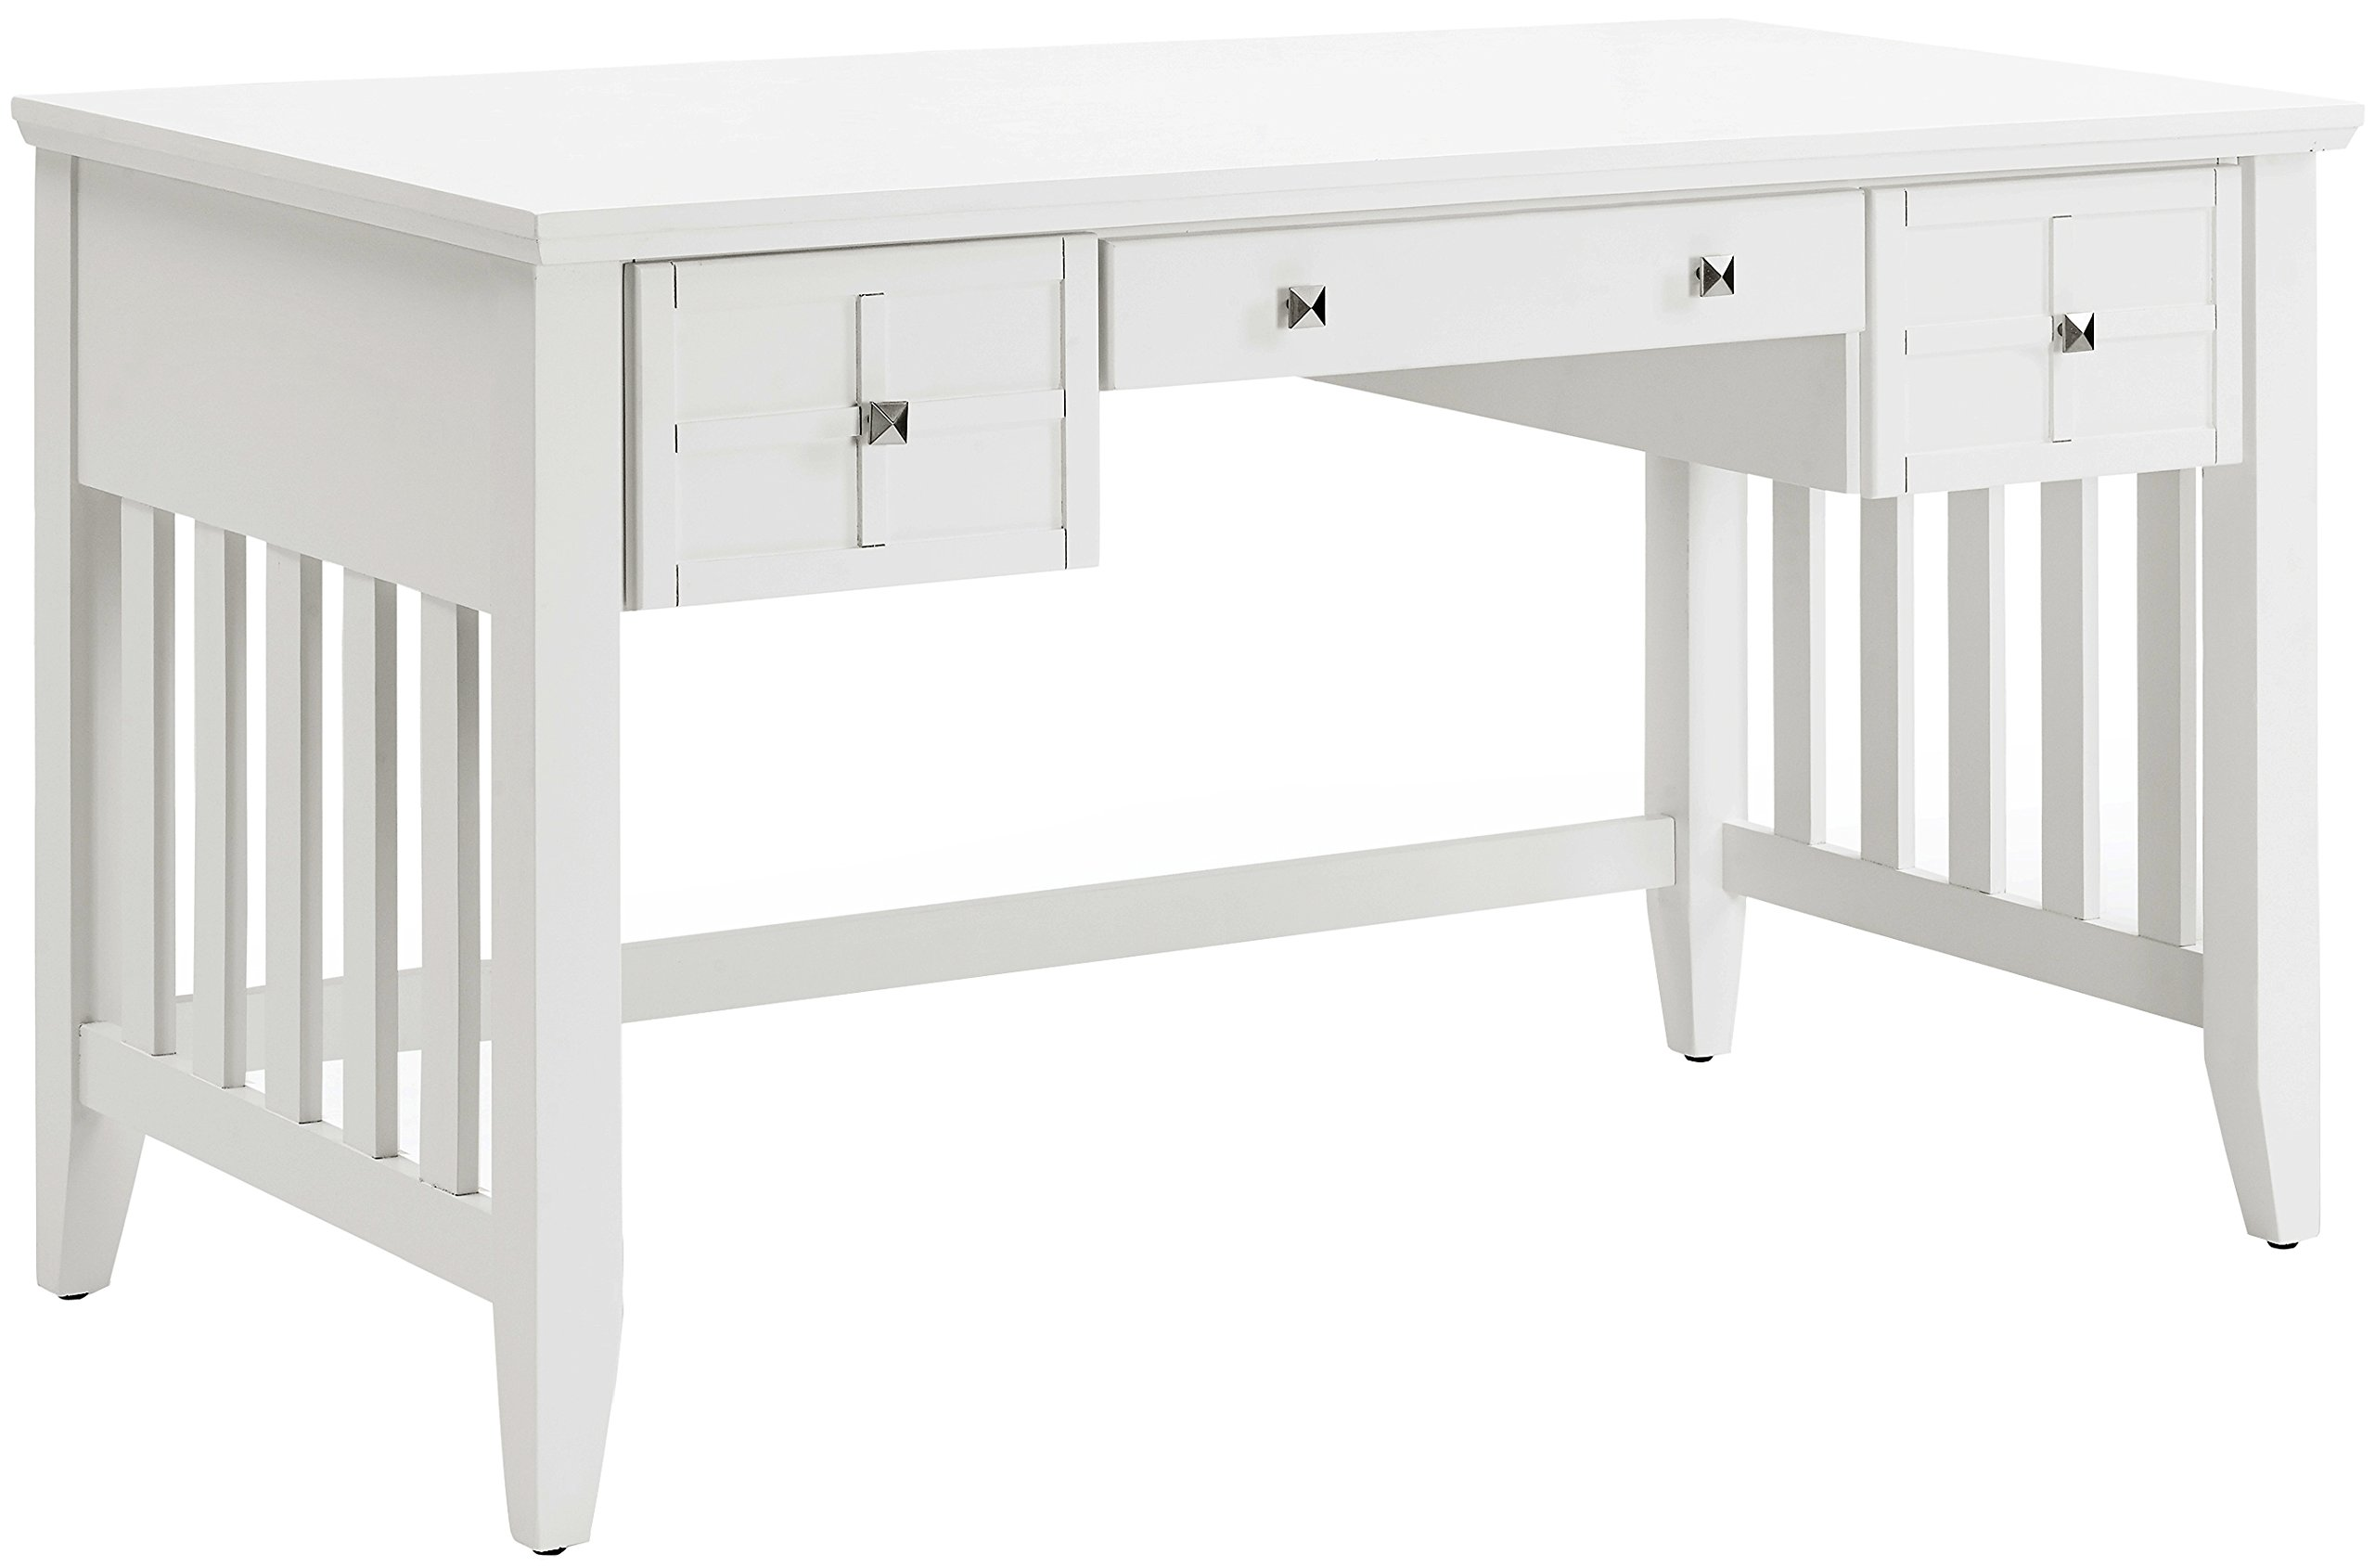 Crosley Furniture Adler Computer Desk with Keyboard Tray - White by Crosley Furniture